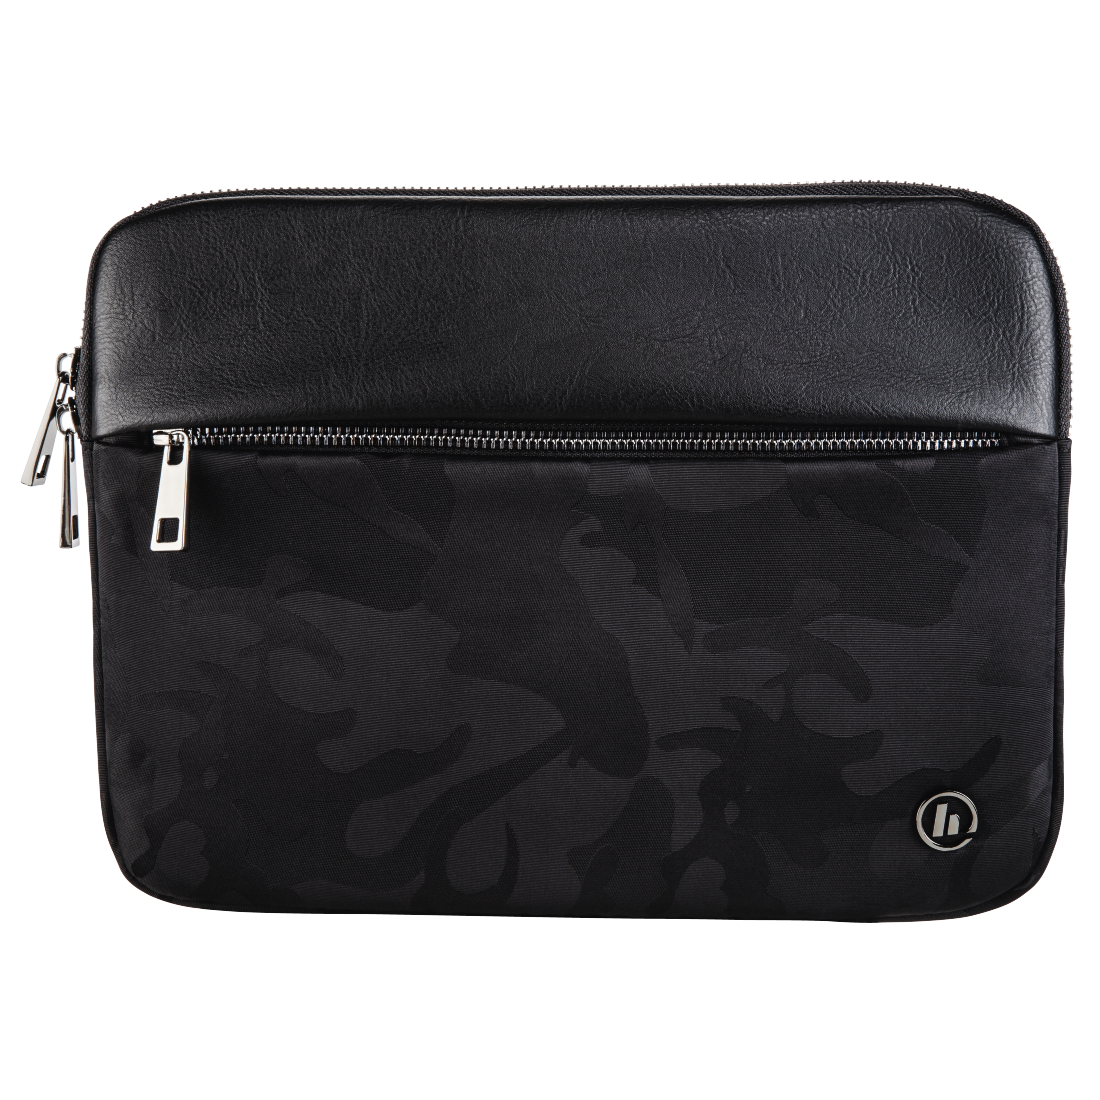 abx High-Res Image - Hama, Mission Camo Tablet Sleeve, up to 25.6 cm (10.1), gun metal